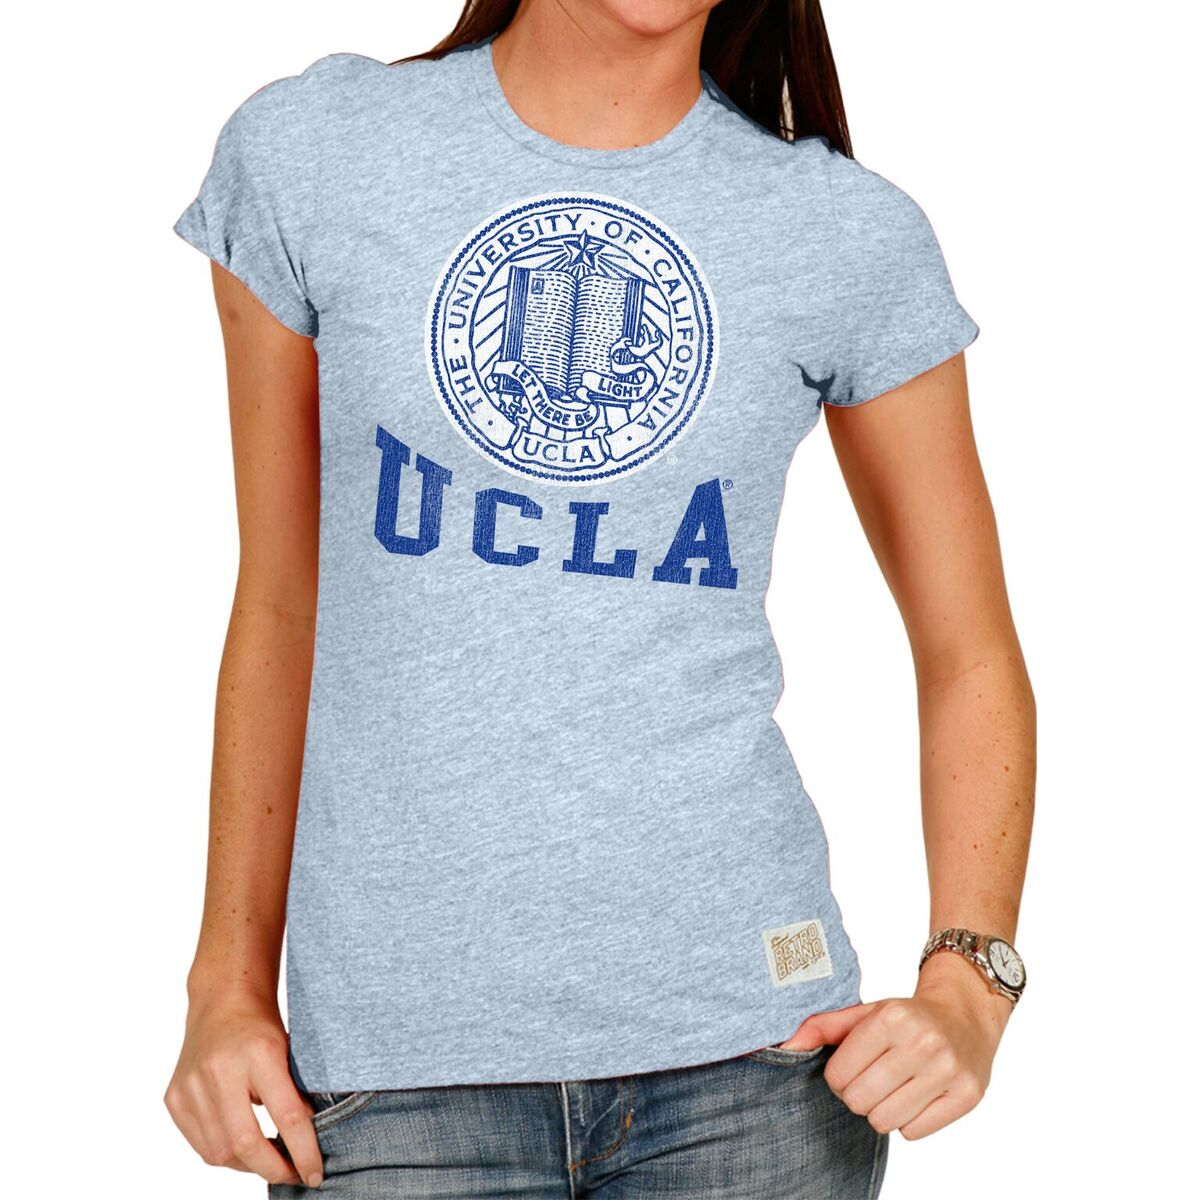 UCLA Bruins Women's Short Sleeve Vintage Tee